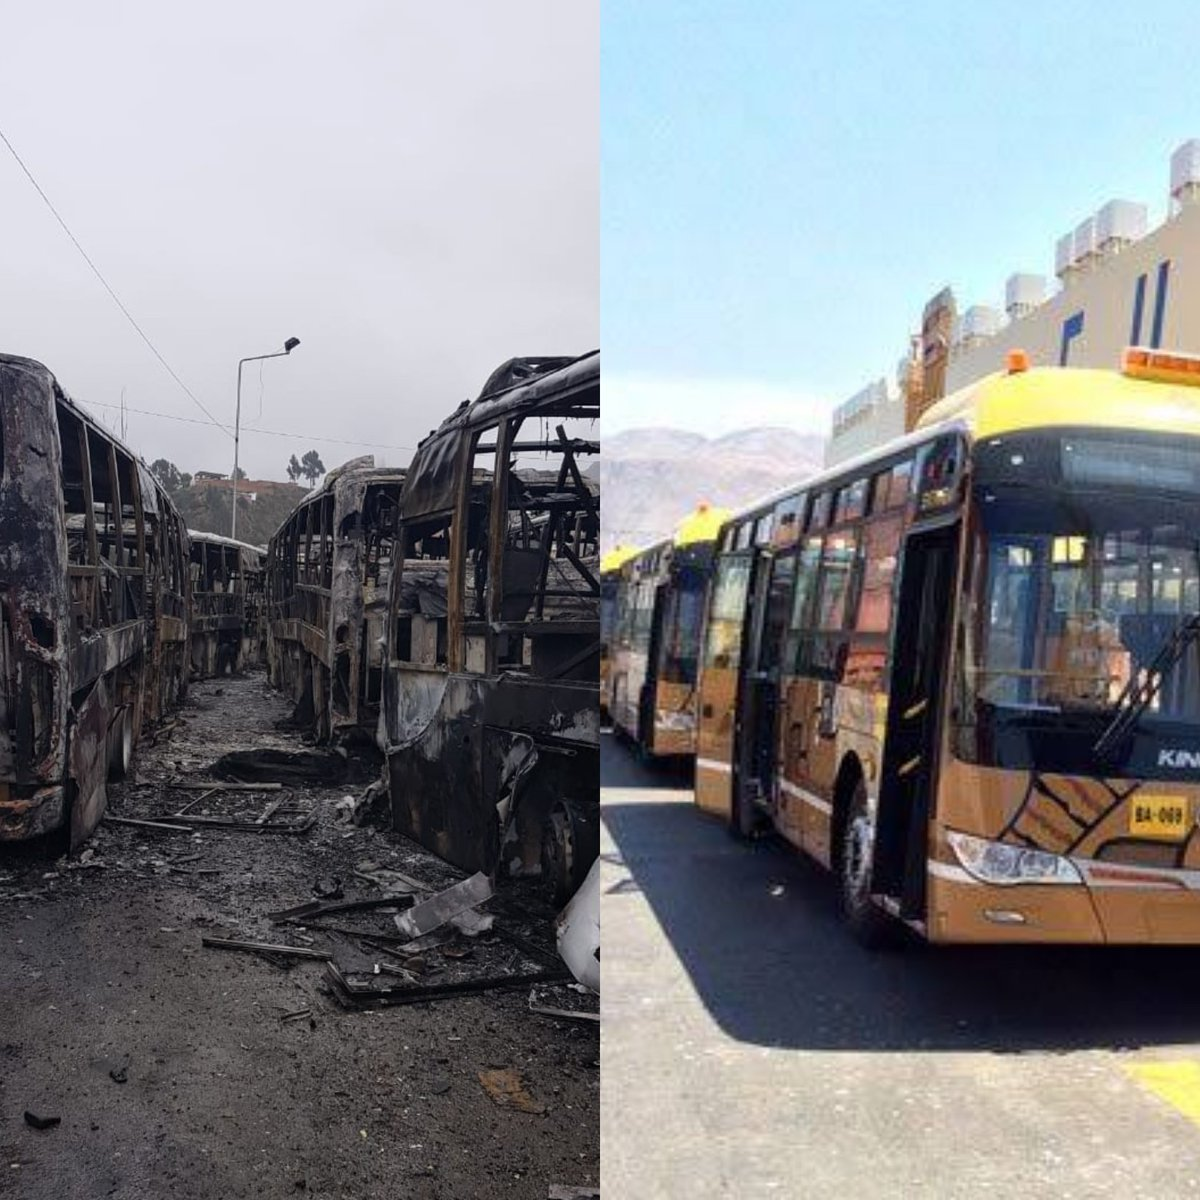 This is what the government of #EvoMorales did. They sent to set fire to public transport, businesses and houses. #SOSBolivia <br>http://pic.twitter.com/aQr0BxGjKM